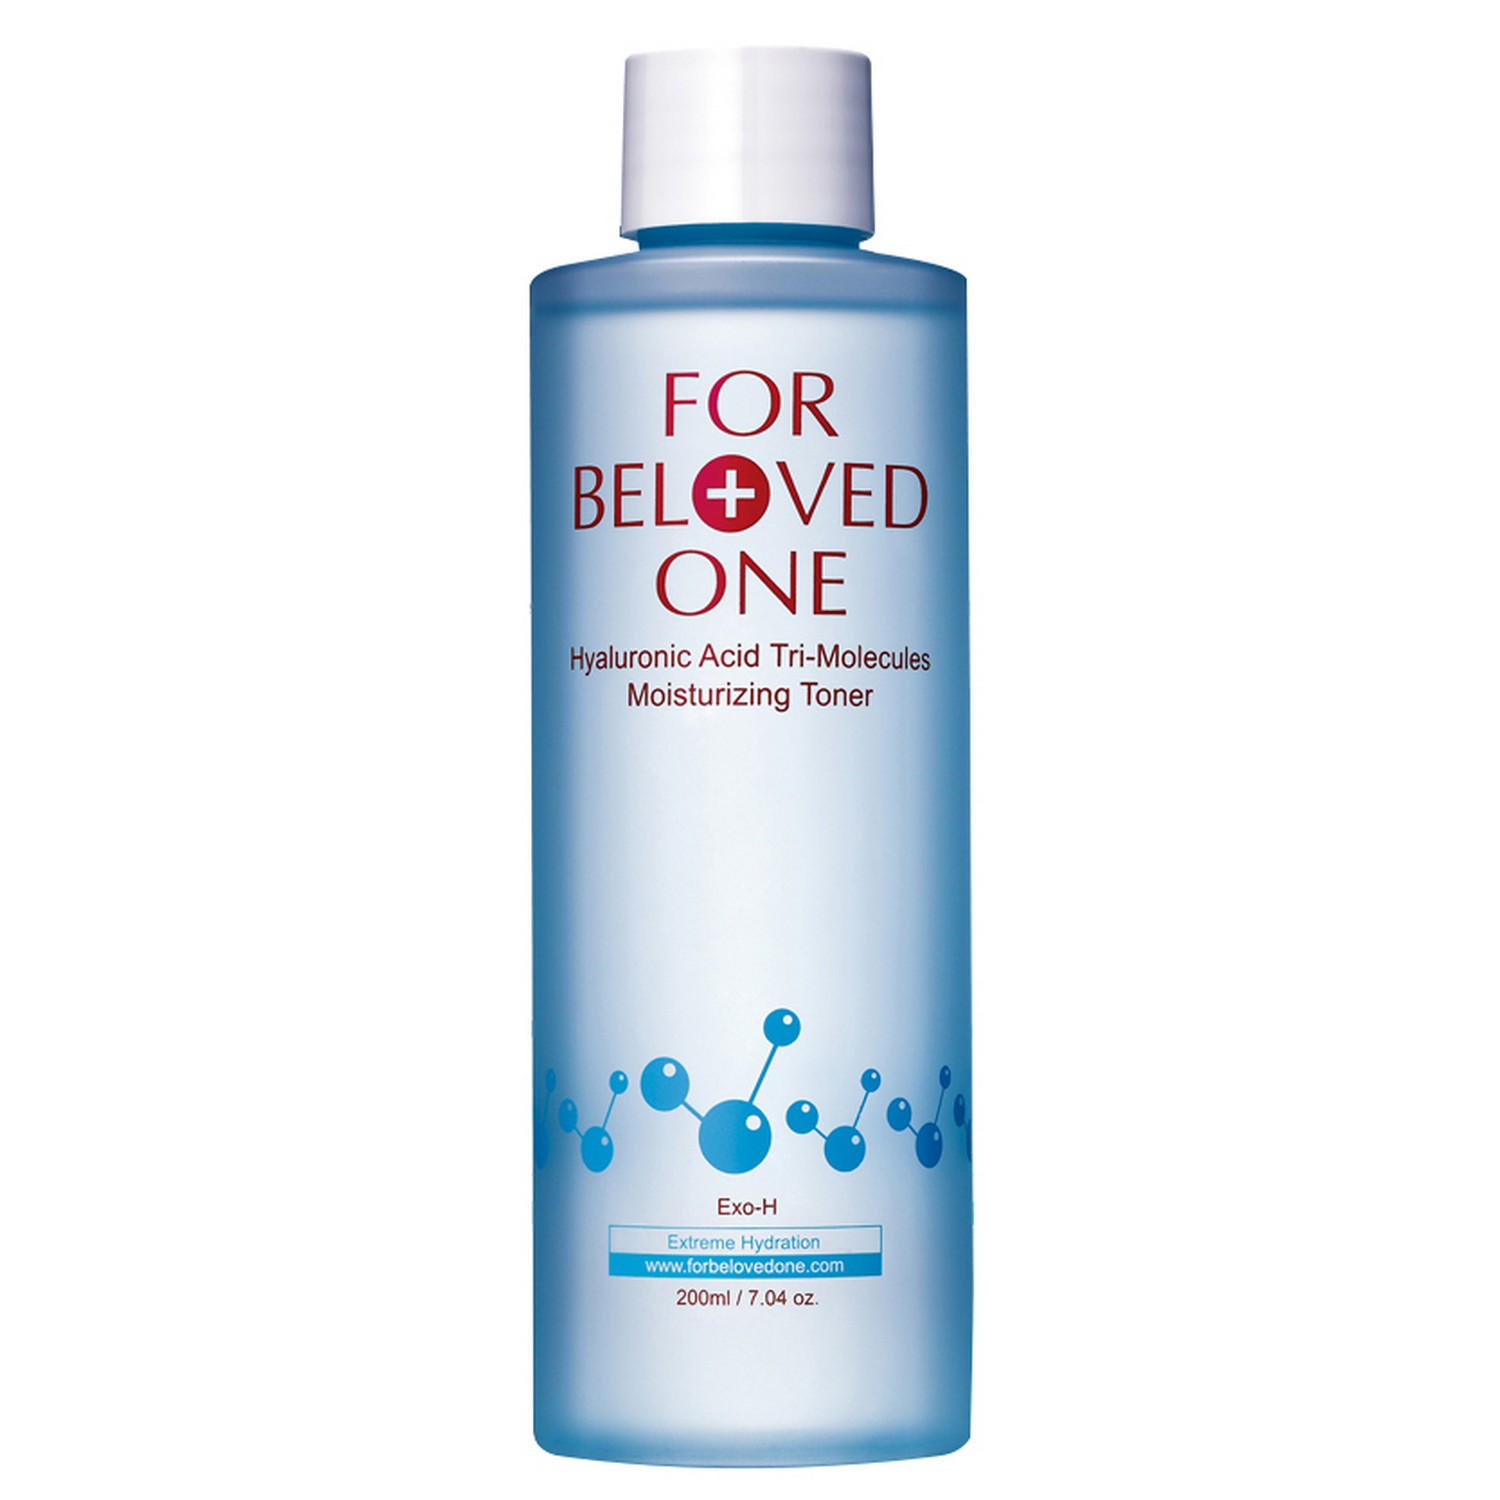 For Beloved One Hyaluronic Acid Tri-Molecules Moisturizing Toner (200 ml / 7.04 oz)